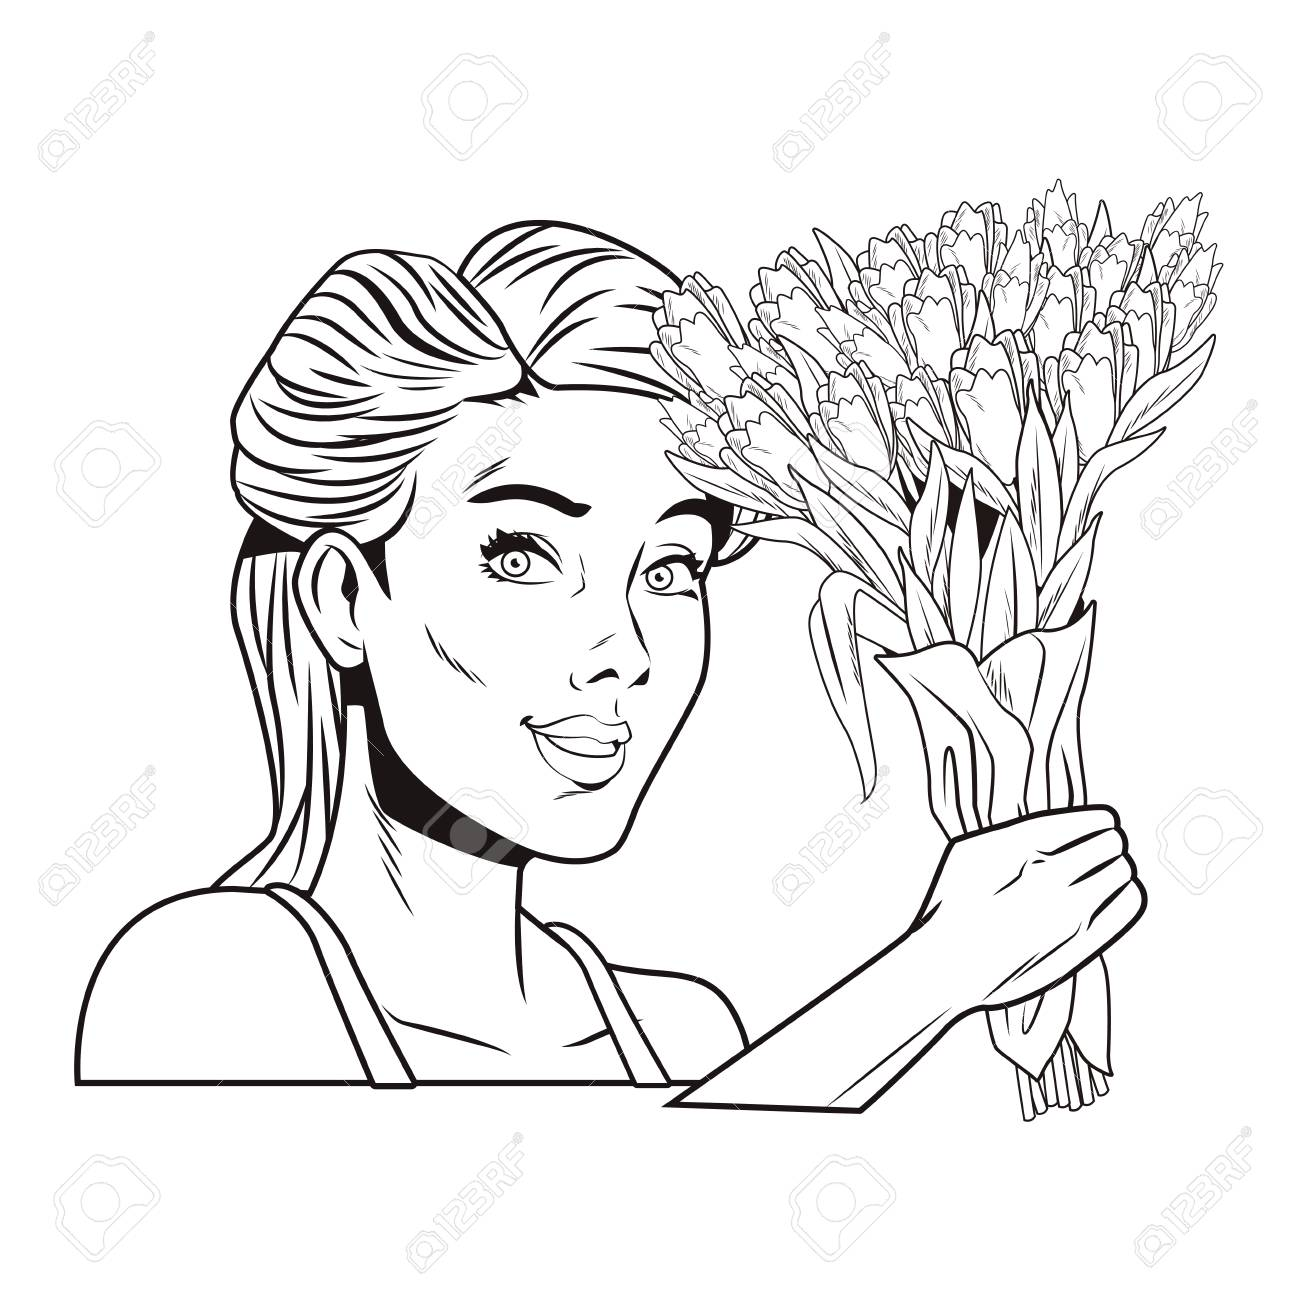 Pop Art Woman With Flowers Cartoon In Black And White Vector